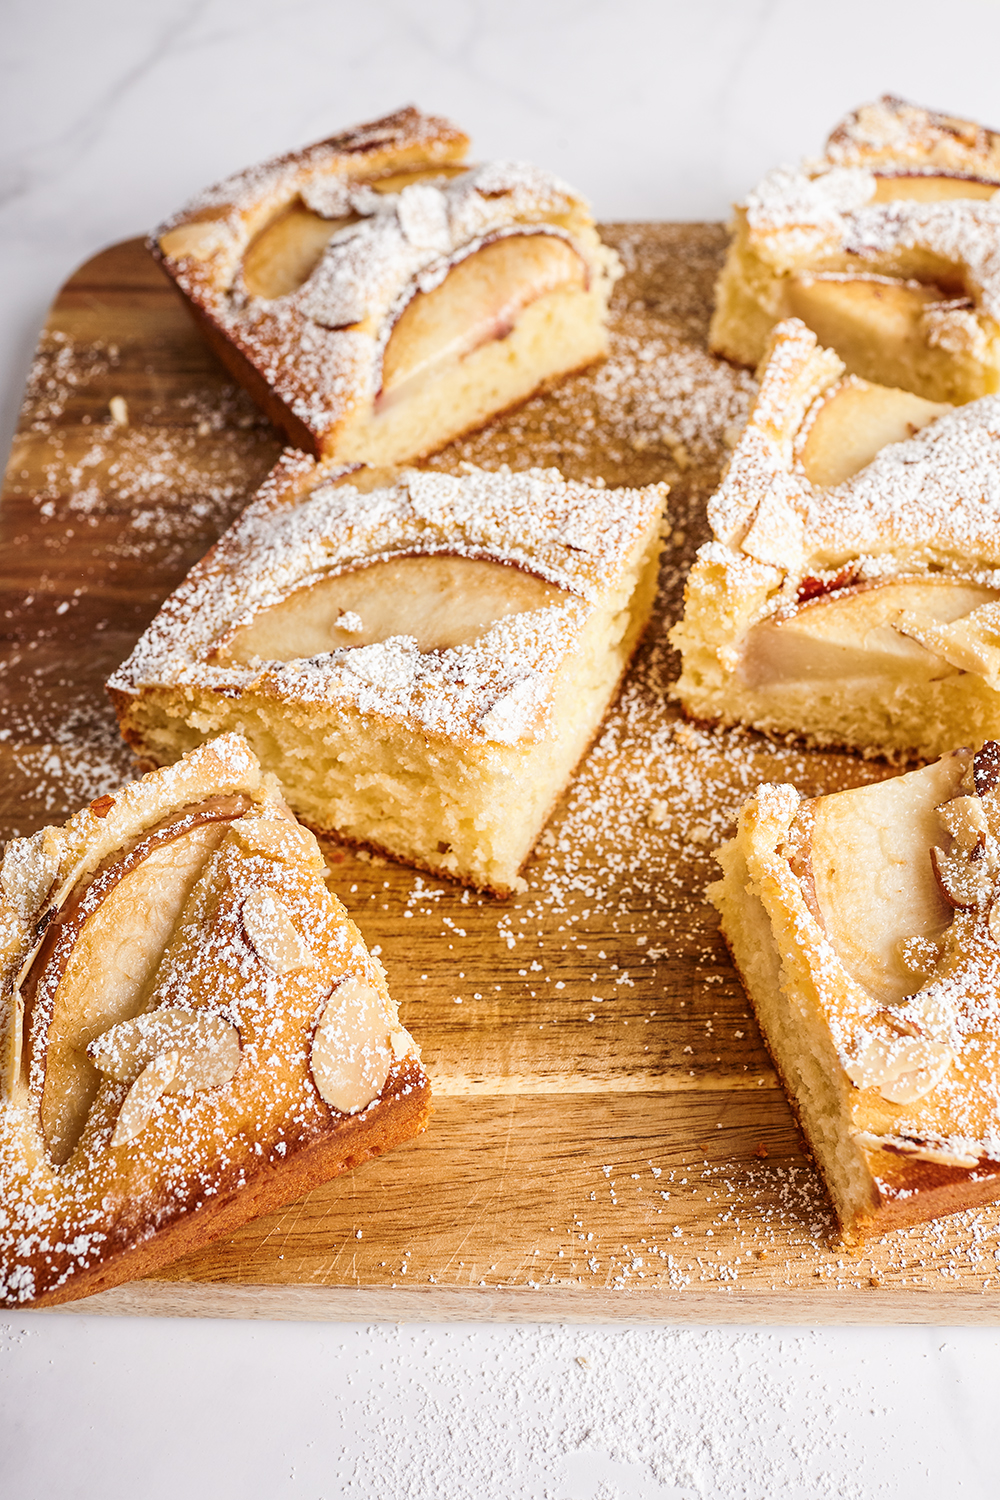 Peach moelleux with almonds